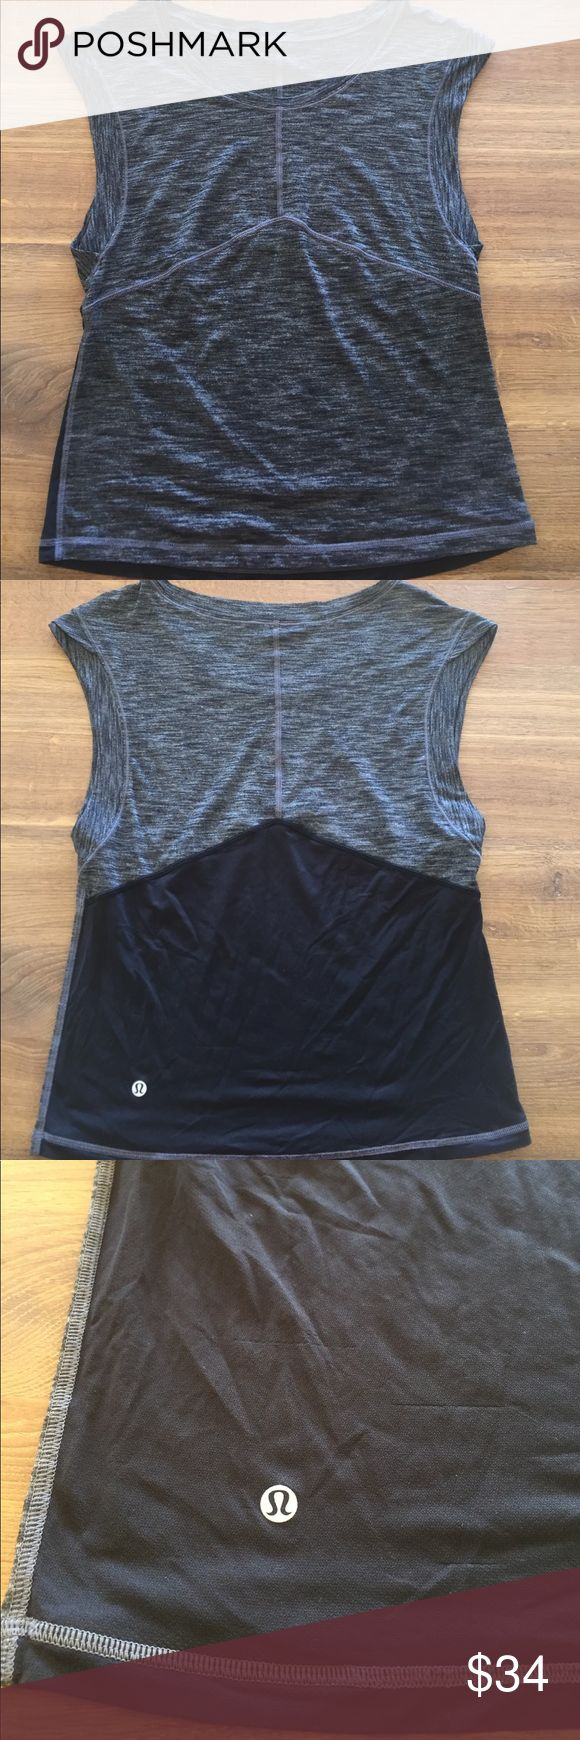 """PRICE DROP‼️ Lululemon Tee! (Only worn 2 times!) Lululemon OUT OF STOCK """"Get Sweat Tee""""Tank! Heathered gray tank! SWEAT-Wicking Luon fabric and Mesh fabric panels to keep air flowing, keeping you cool. Loose fit, hip length. lululemon athletica Tops Tees - Short Sleeve"""